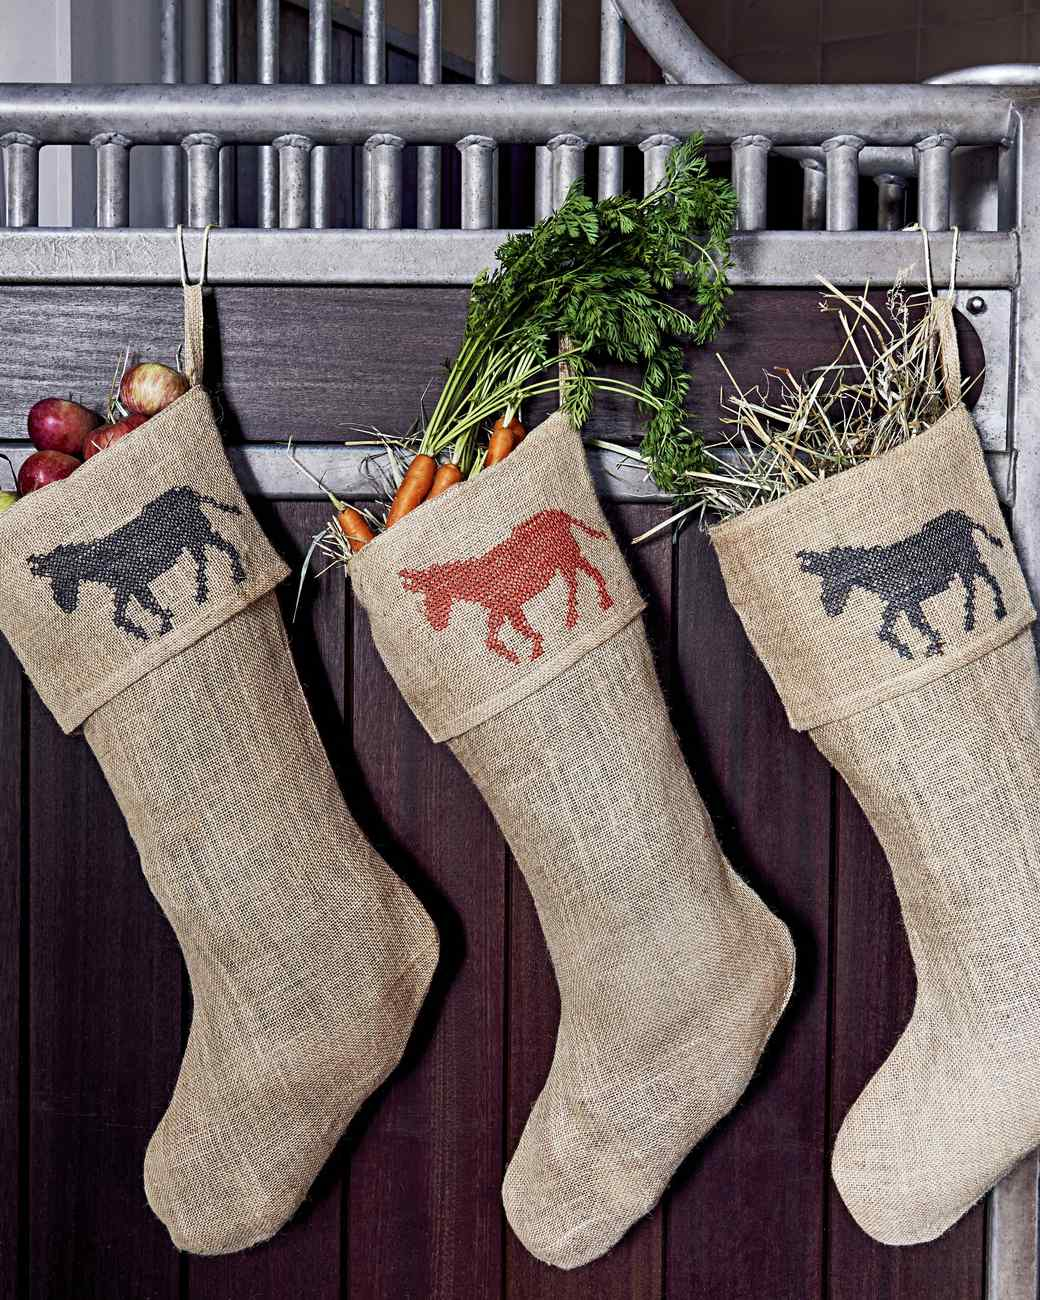 jute stockings filled with hay vegetables fruit - Burlap Christmas